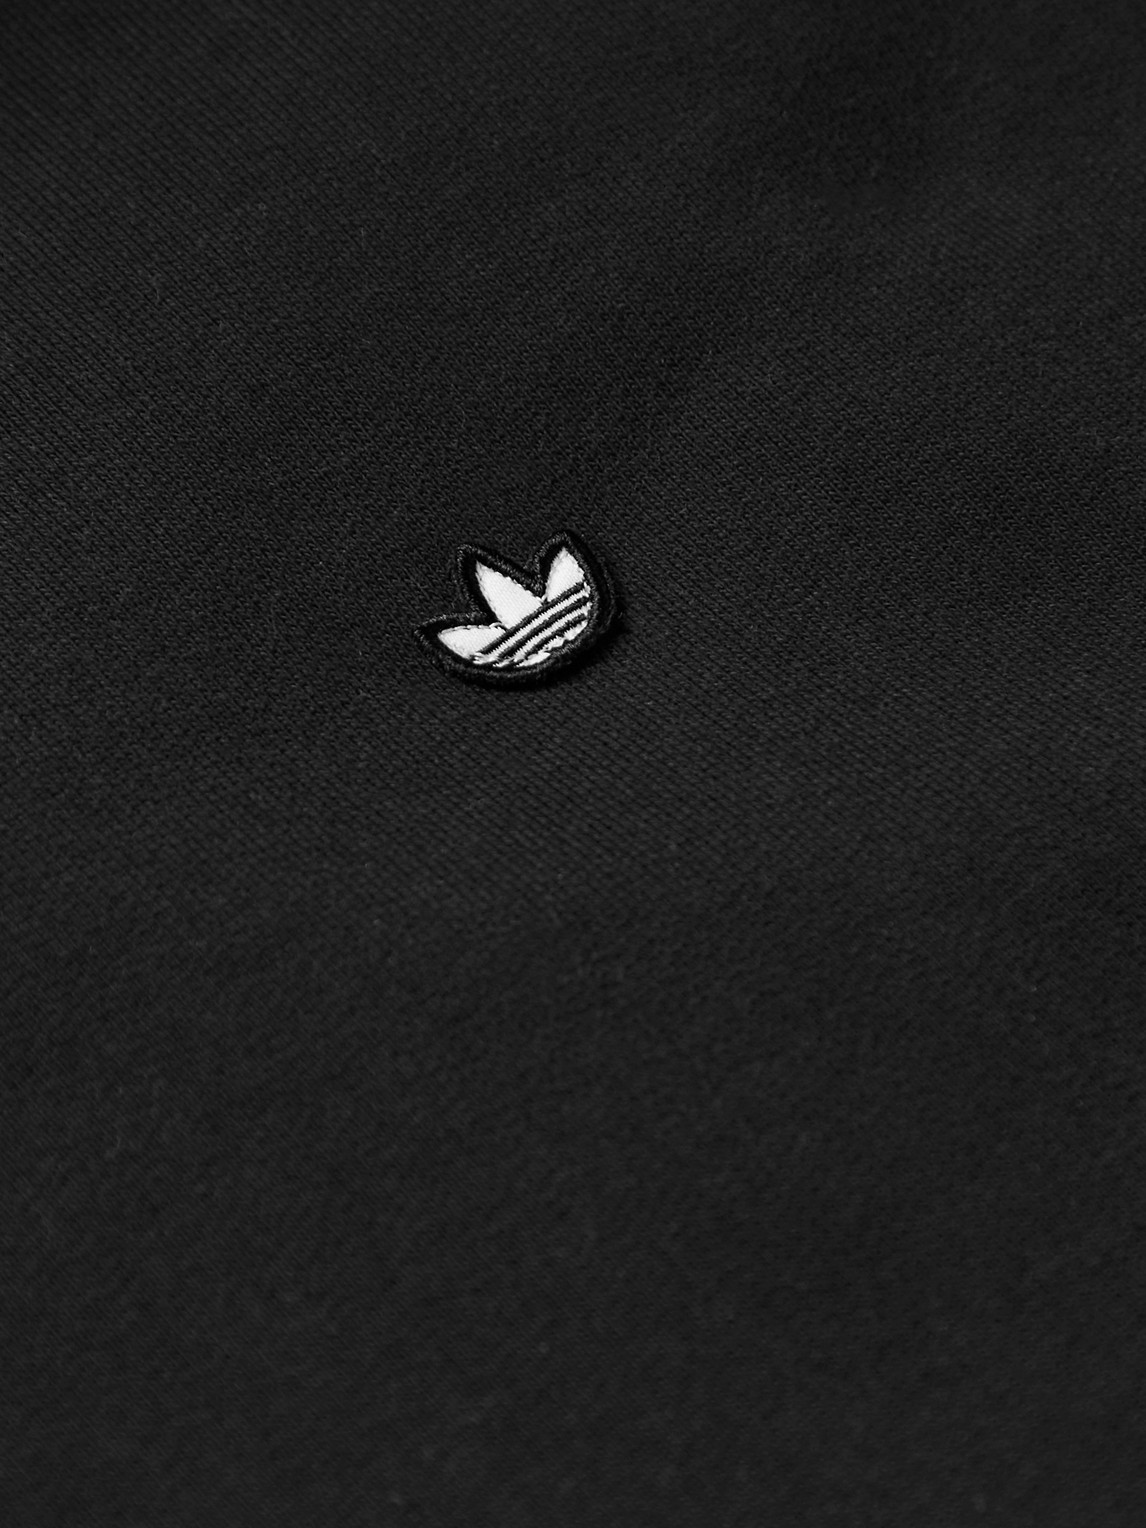 ADIDAS ORIGINALS Hoodies ADICOLOR PREMIUM LOGO-APPLIQUÉD ORGANIC LOOPBACK COTTON-JERSEY HOODIE